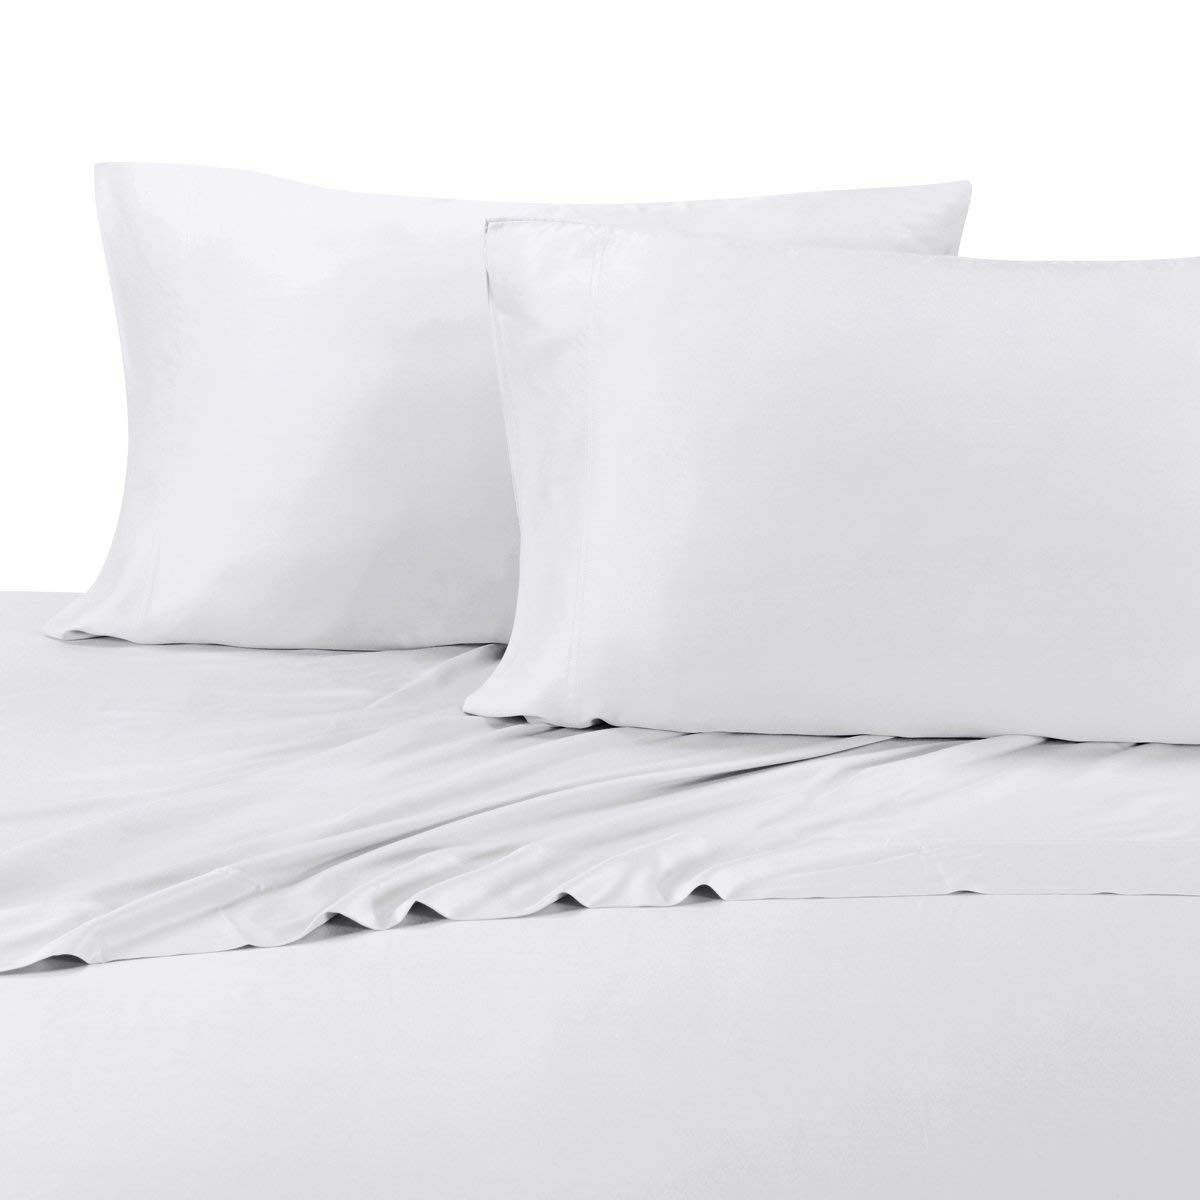 Sheetsnthings Silky-Soft Hybrid Bamboo-Cotton Queen 4PC Bed Sheets Set